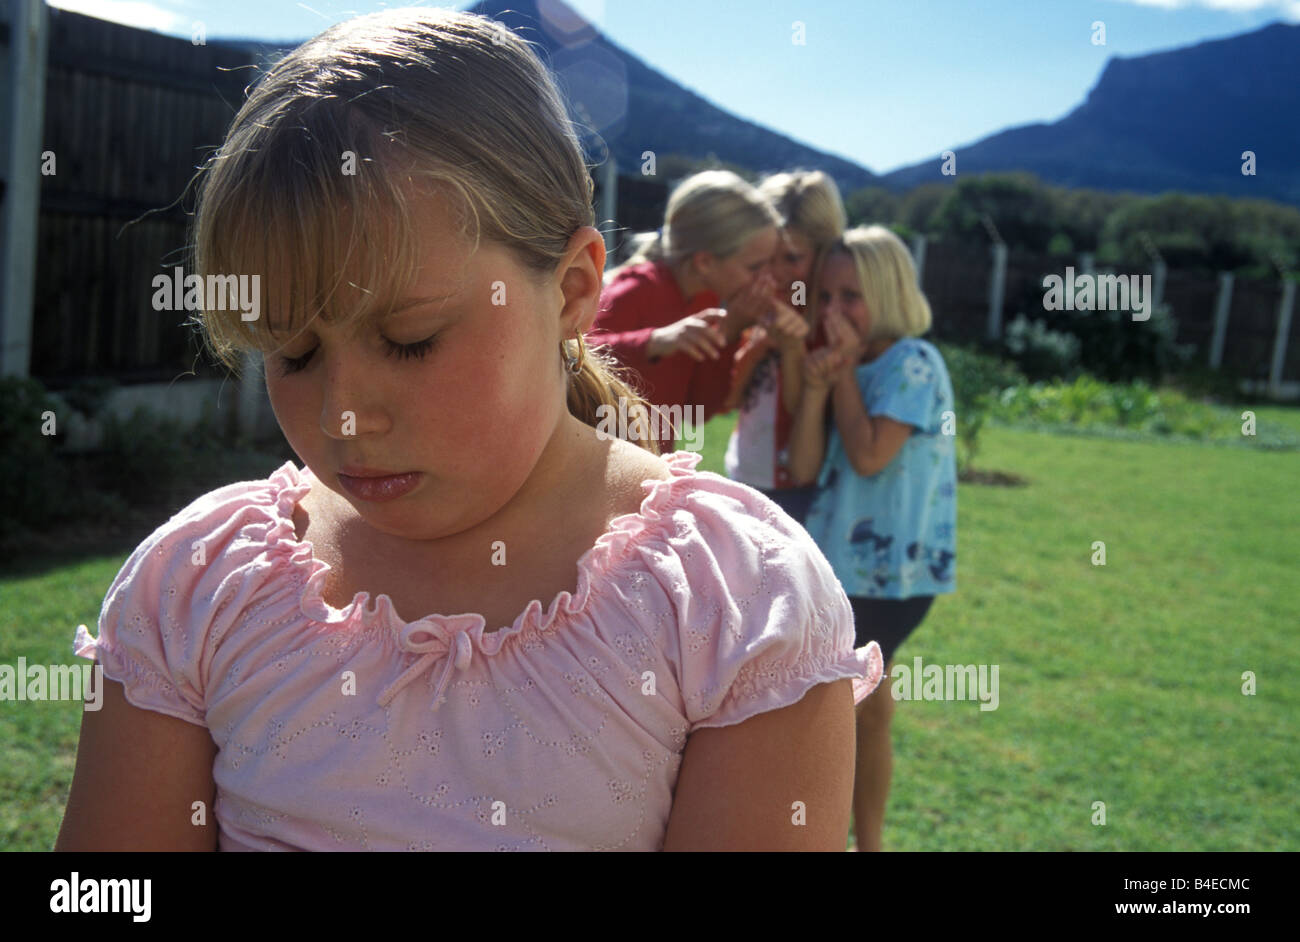 plump girls plump little girl being teased by other girls - Stock Image